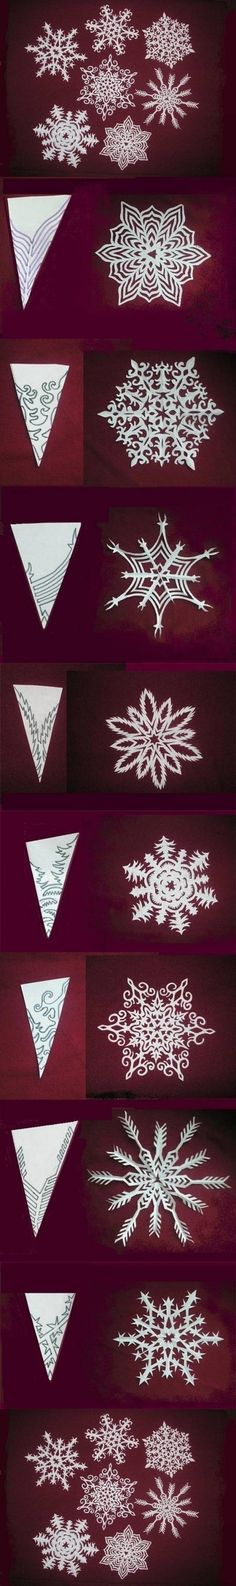 How to make beautiful Snowflakes Paper craft DIY tutorial instructions | How To Instructions @Jana Oglesby